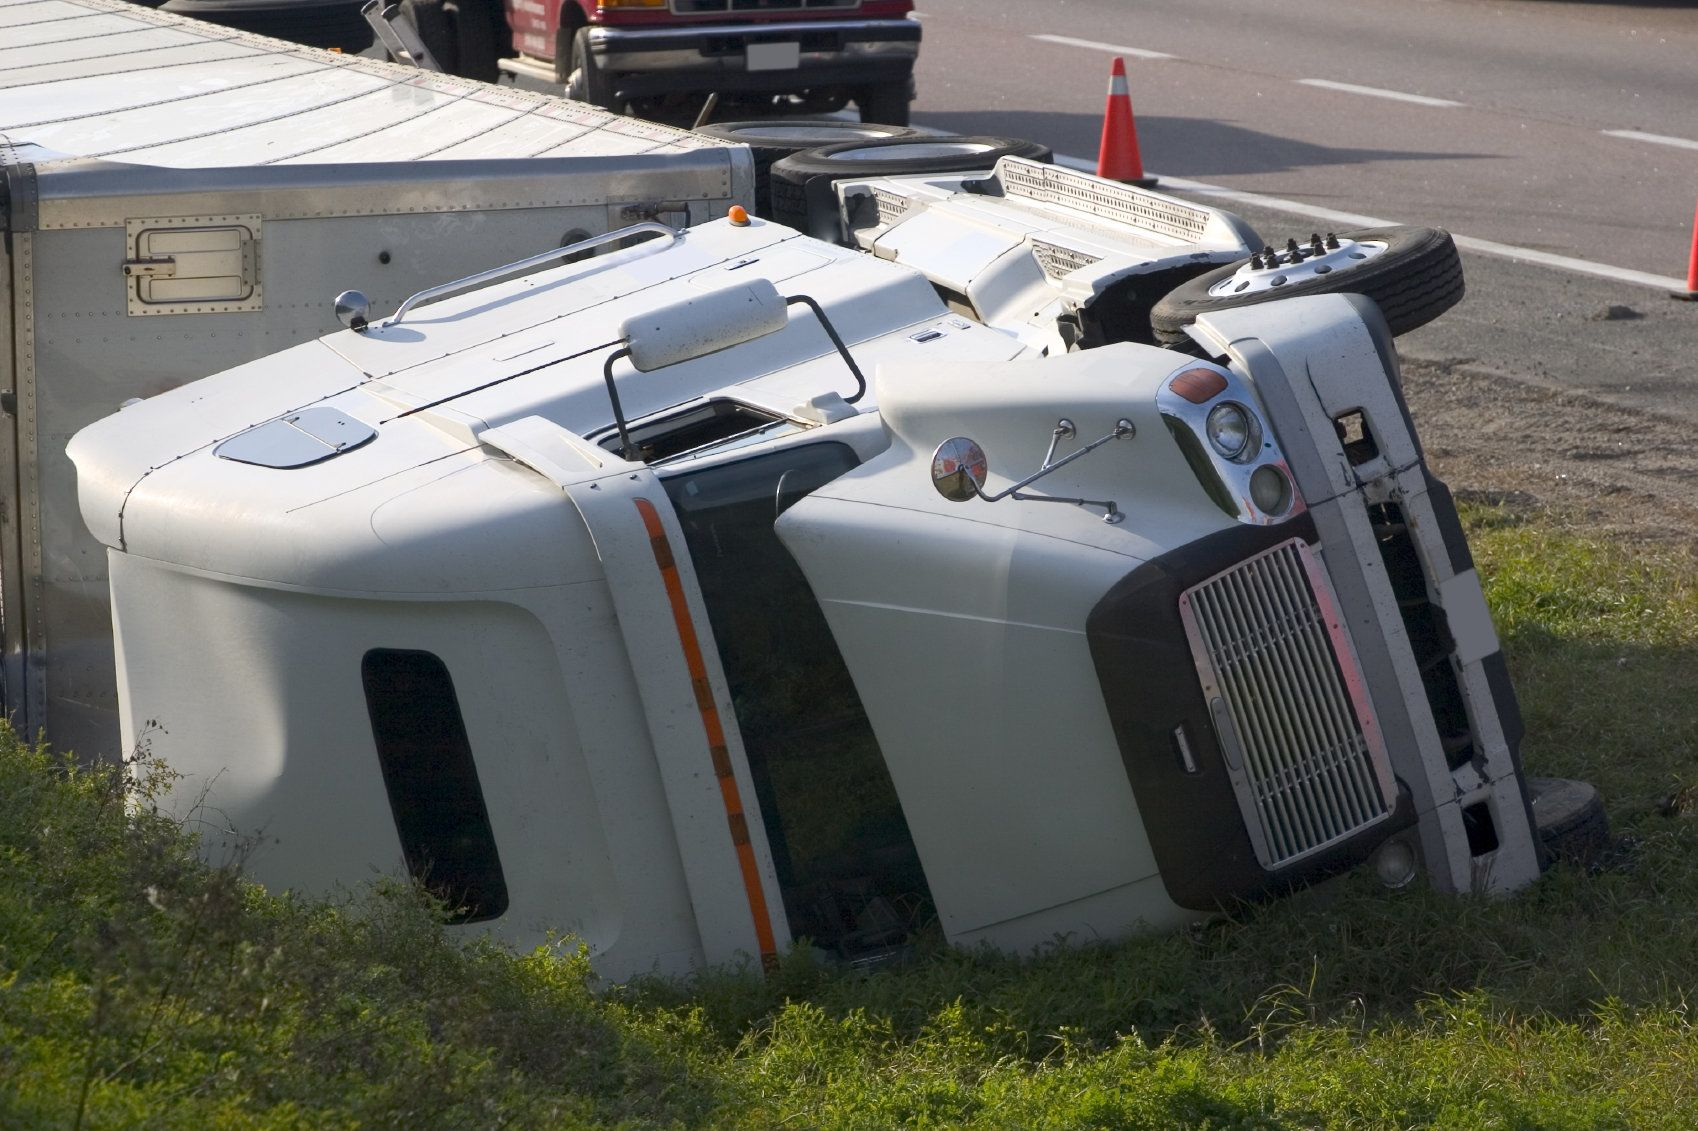 A large truck after a rollover accident